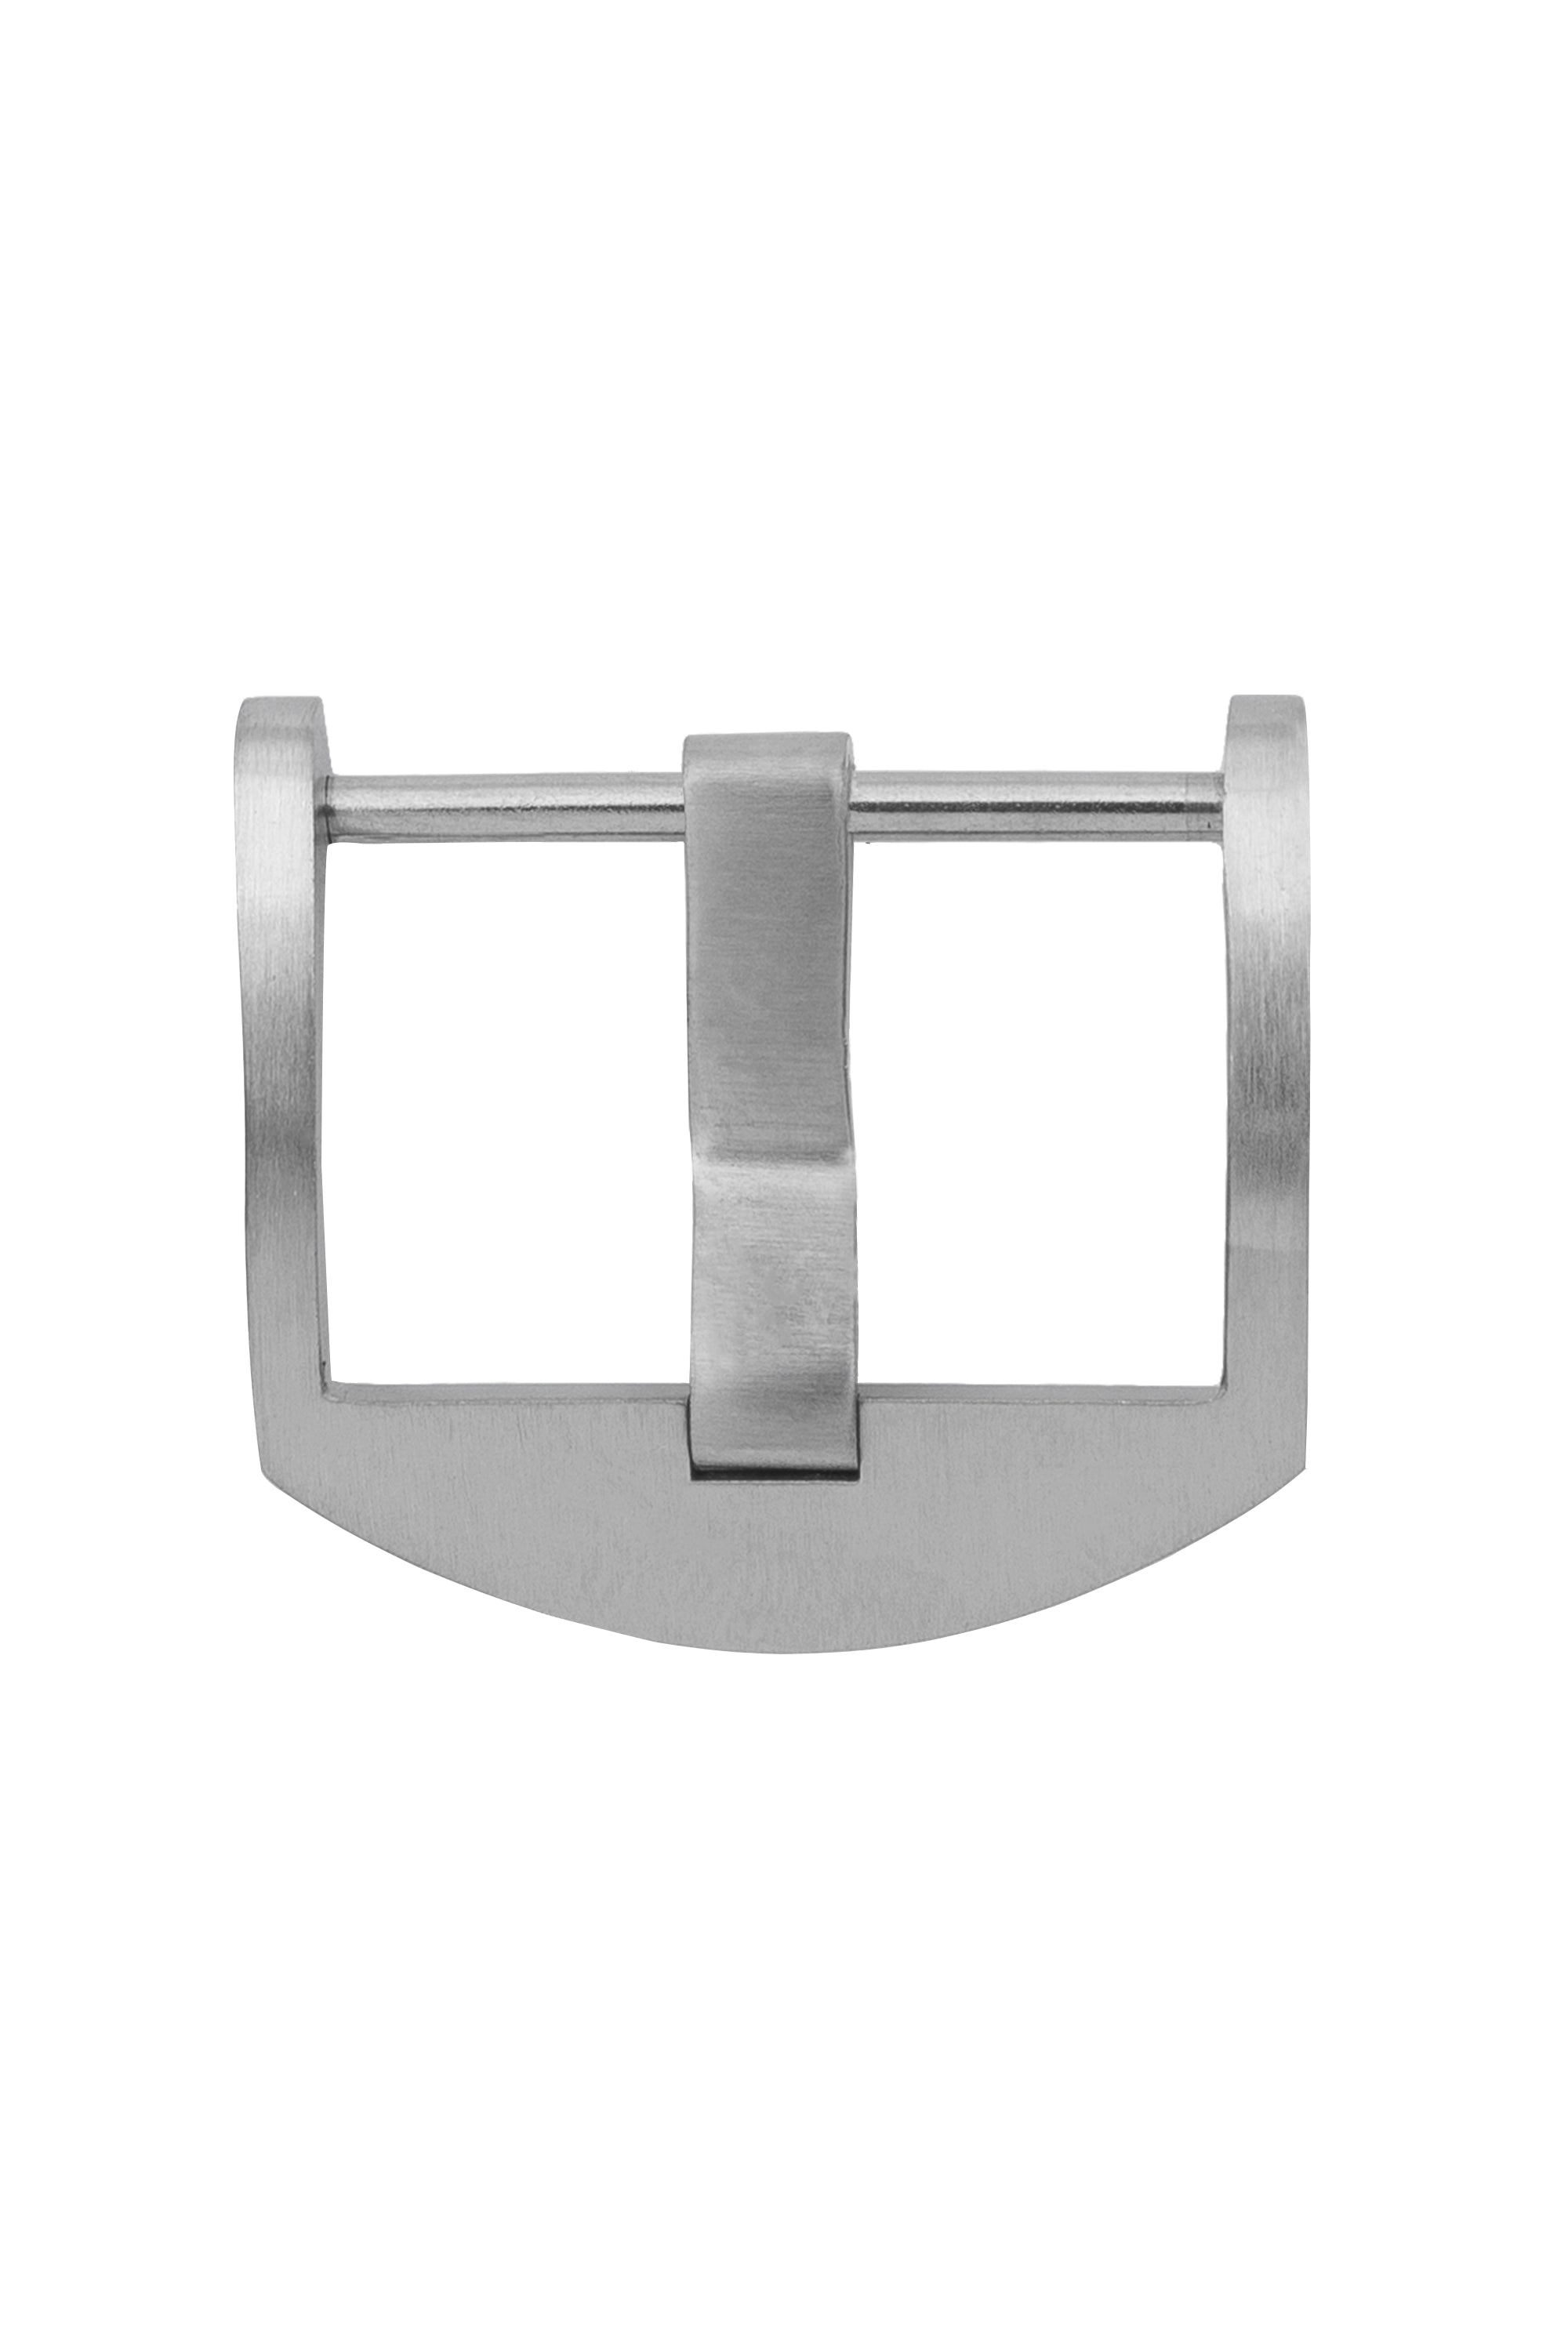 Brushed ARD Screw-in Tang Buckle